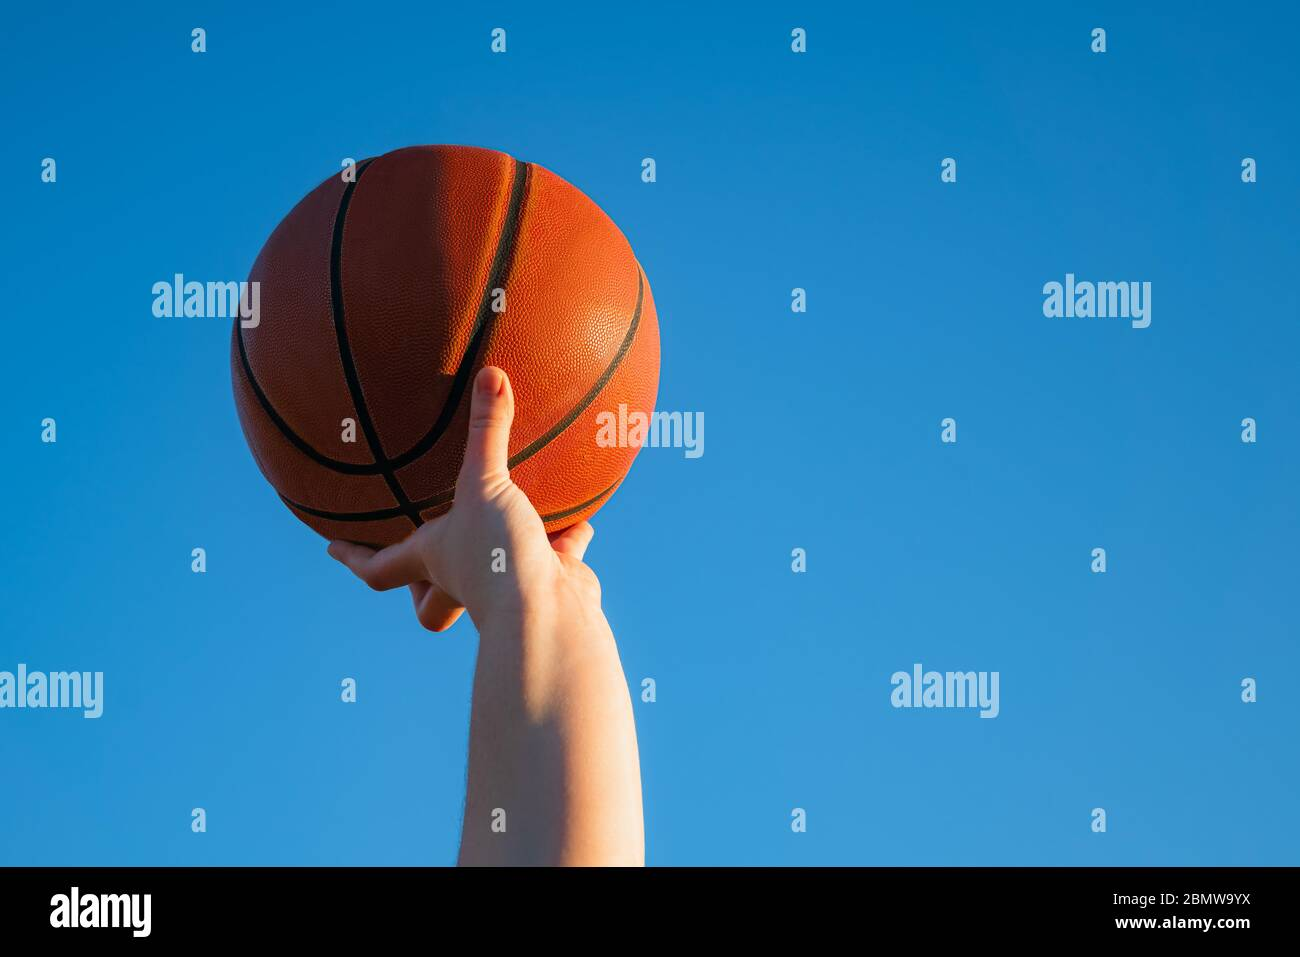 Close up of professional basketball player holding a ball in the hand. Street basketball athlete with a ball and blue sky in the background Stock Photo